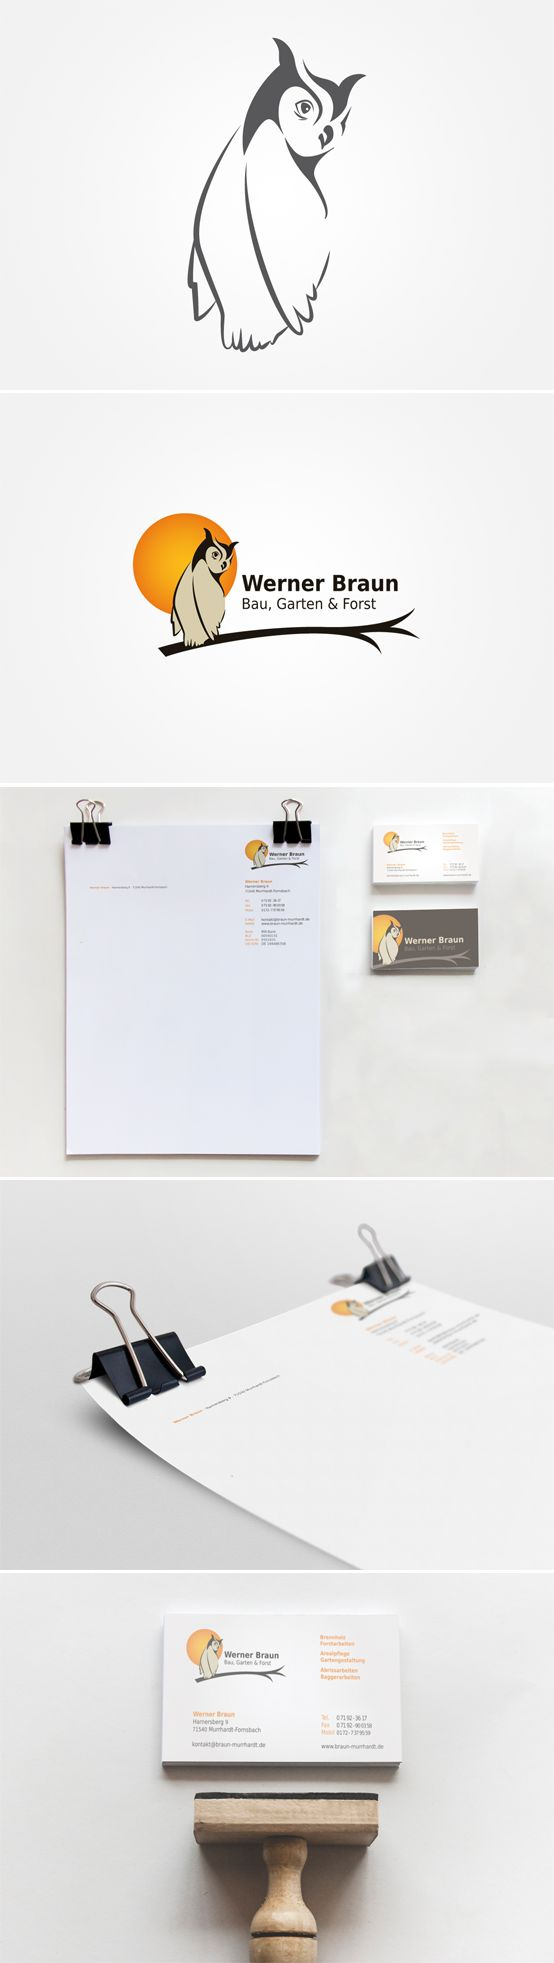 Für Werner Braun - Bau, Garten & Forst entwickelte Smoco ein Logo, sowie Visitenkarten, Brief- und Faxpapier. | #design #logo #owl #moon #eule #mond #ast #orange #galabau #visitenkarte #briefpapier #business card #letterhead #Germany | made with love in Stuttgart by www.smoco.de